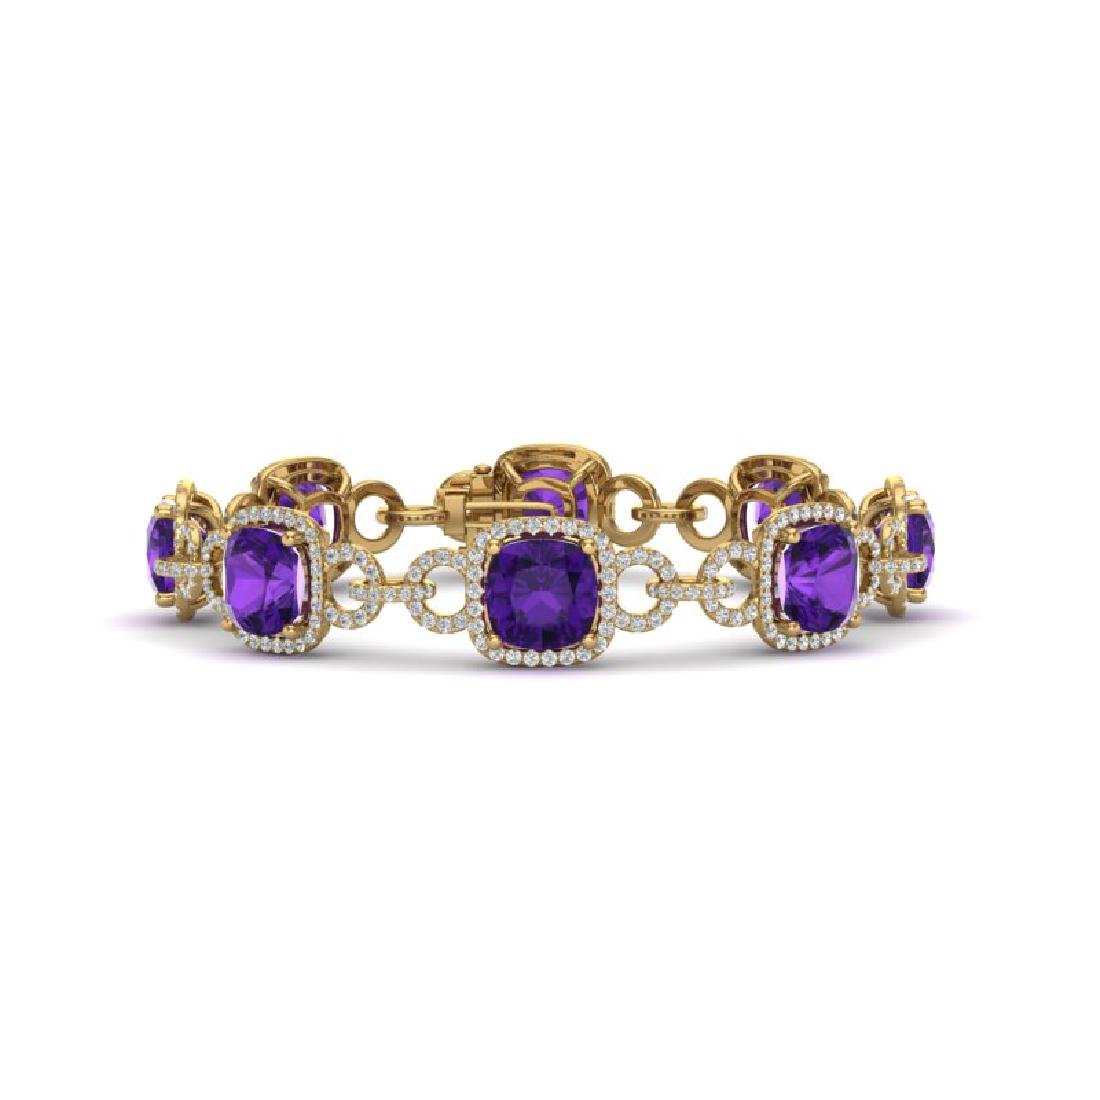 30 CTW Amethyst & VS/SI Diamond Bracelet 14K Yellow